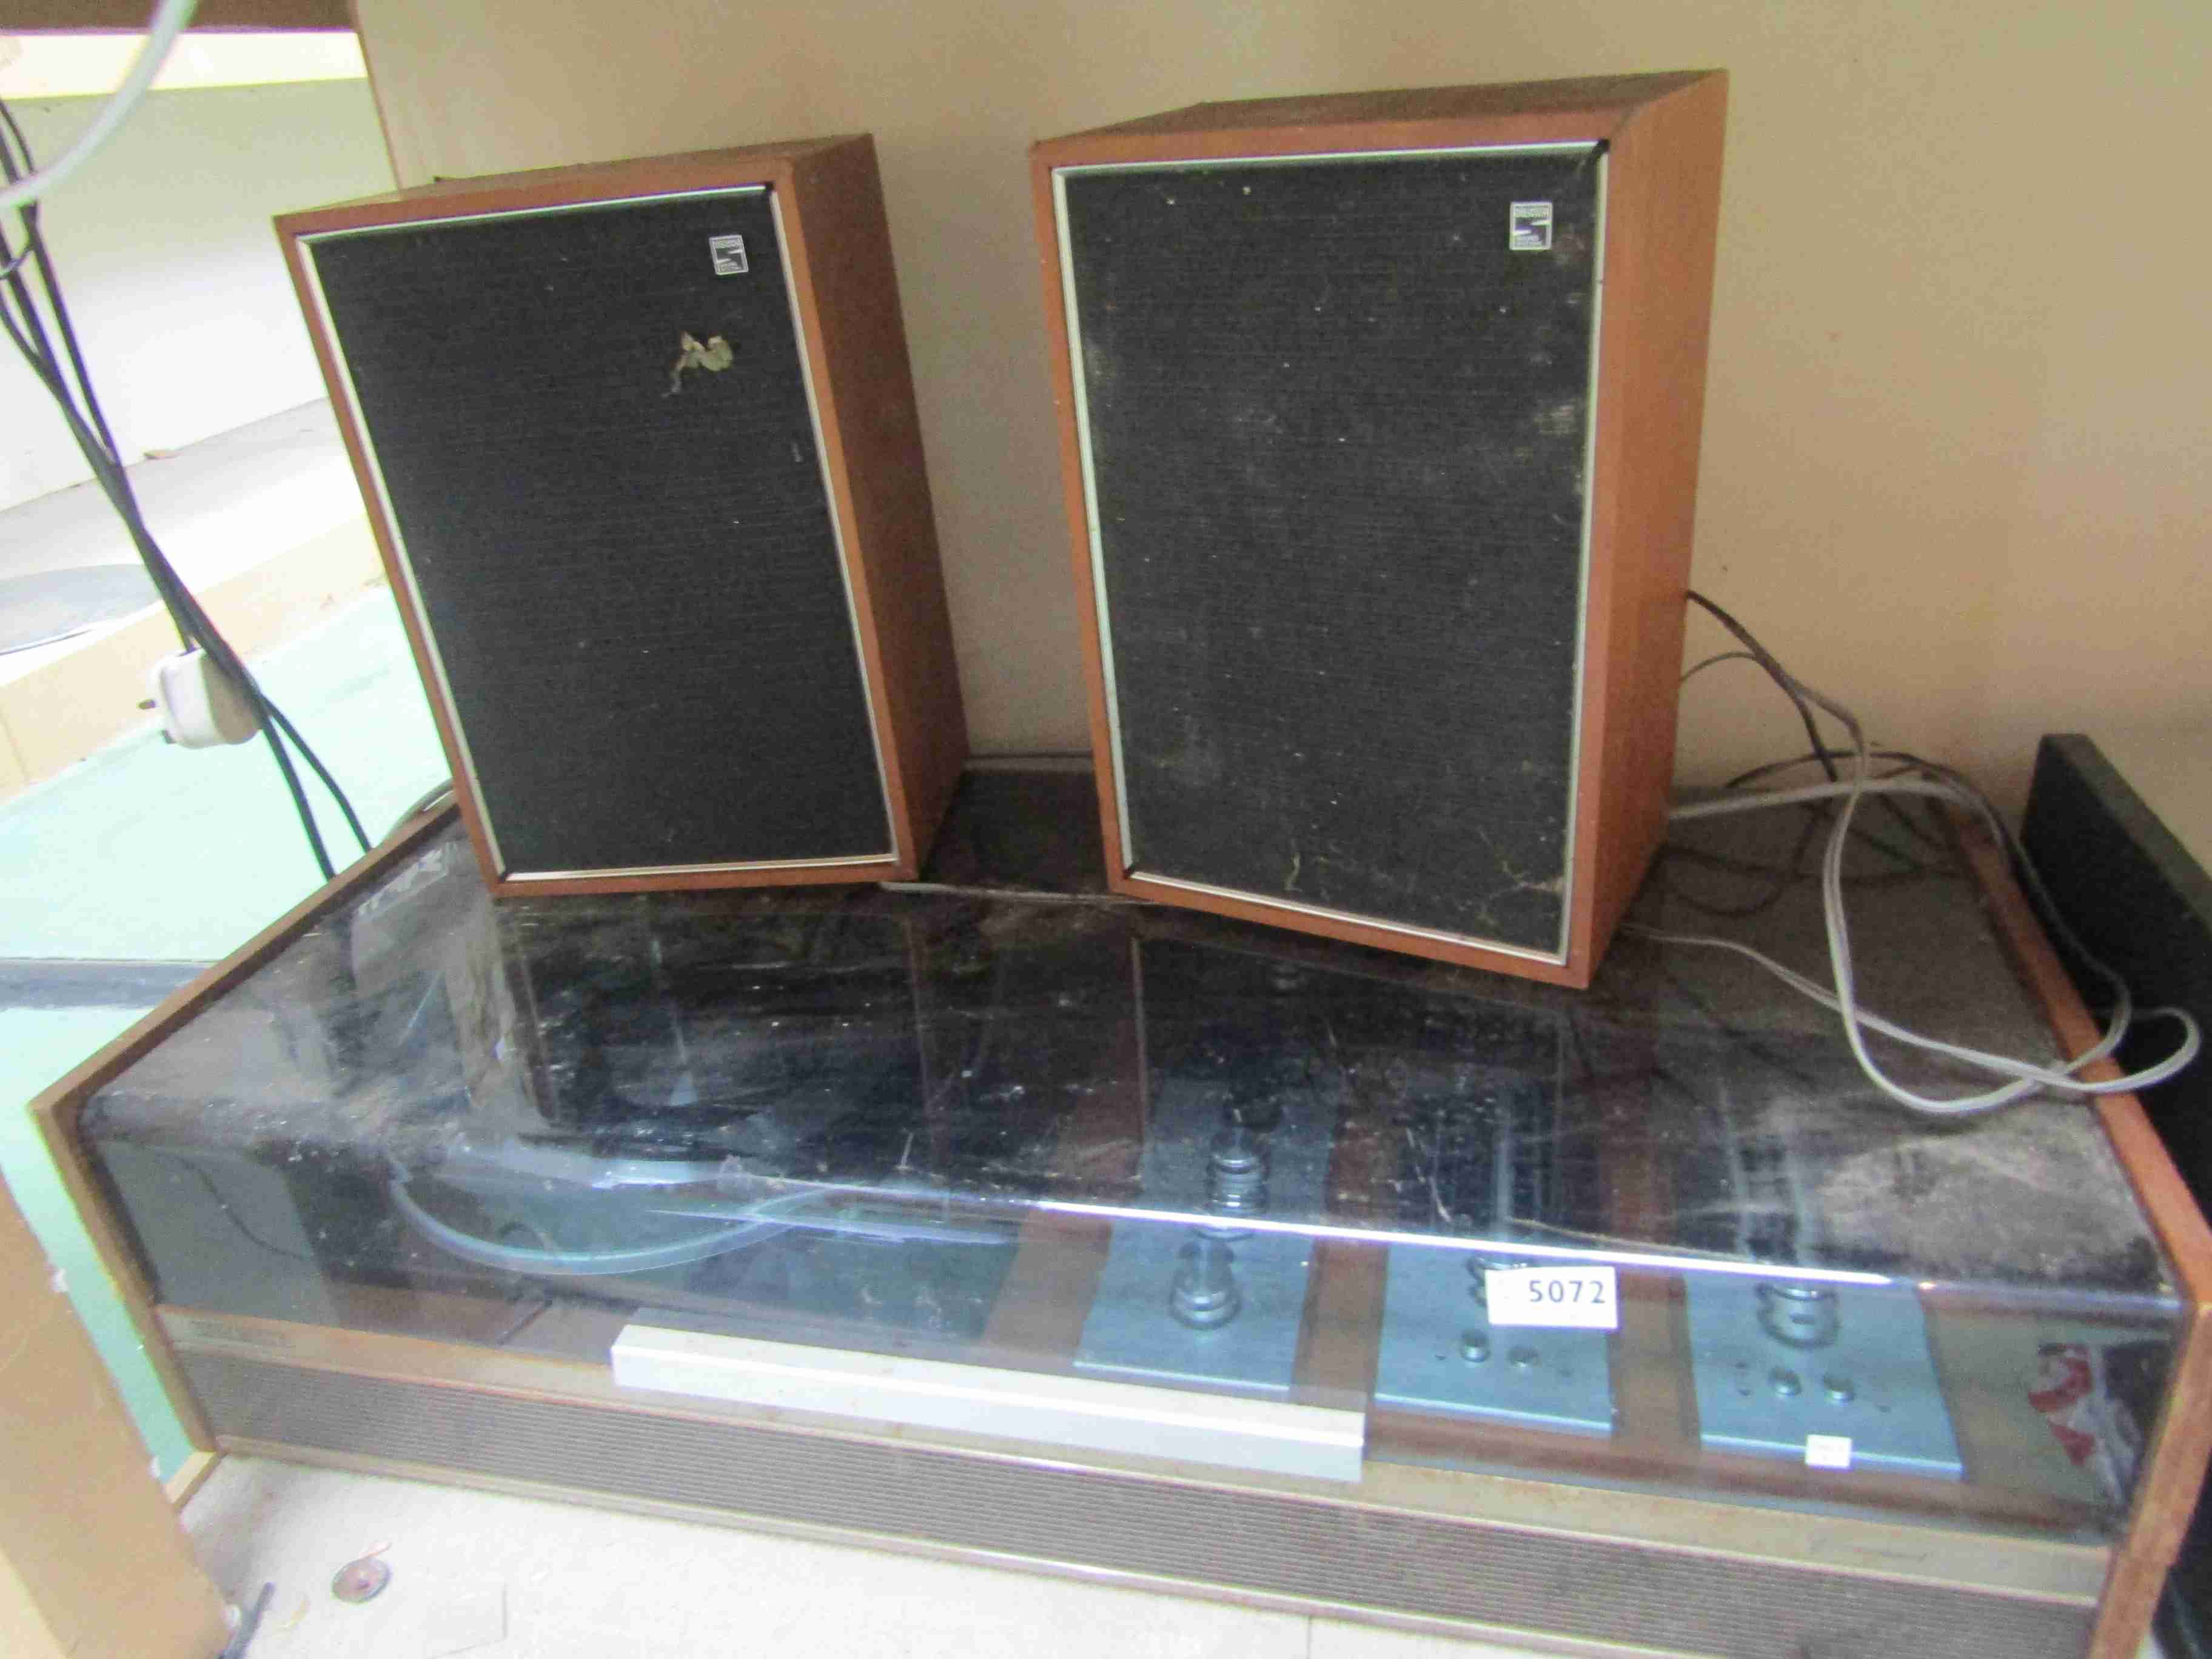 A Decca Sound B5414 record player and speakers (a/f)